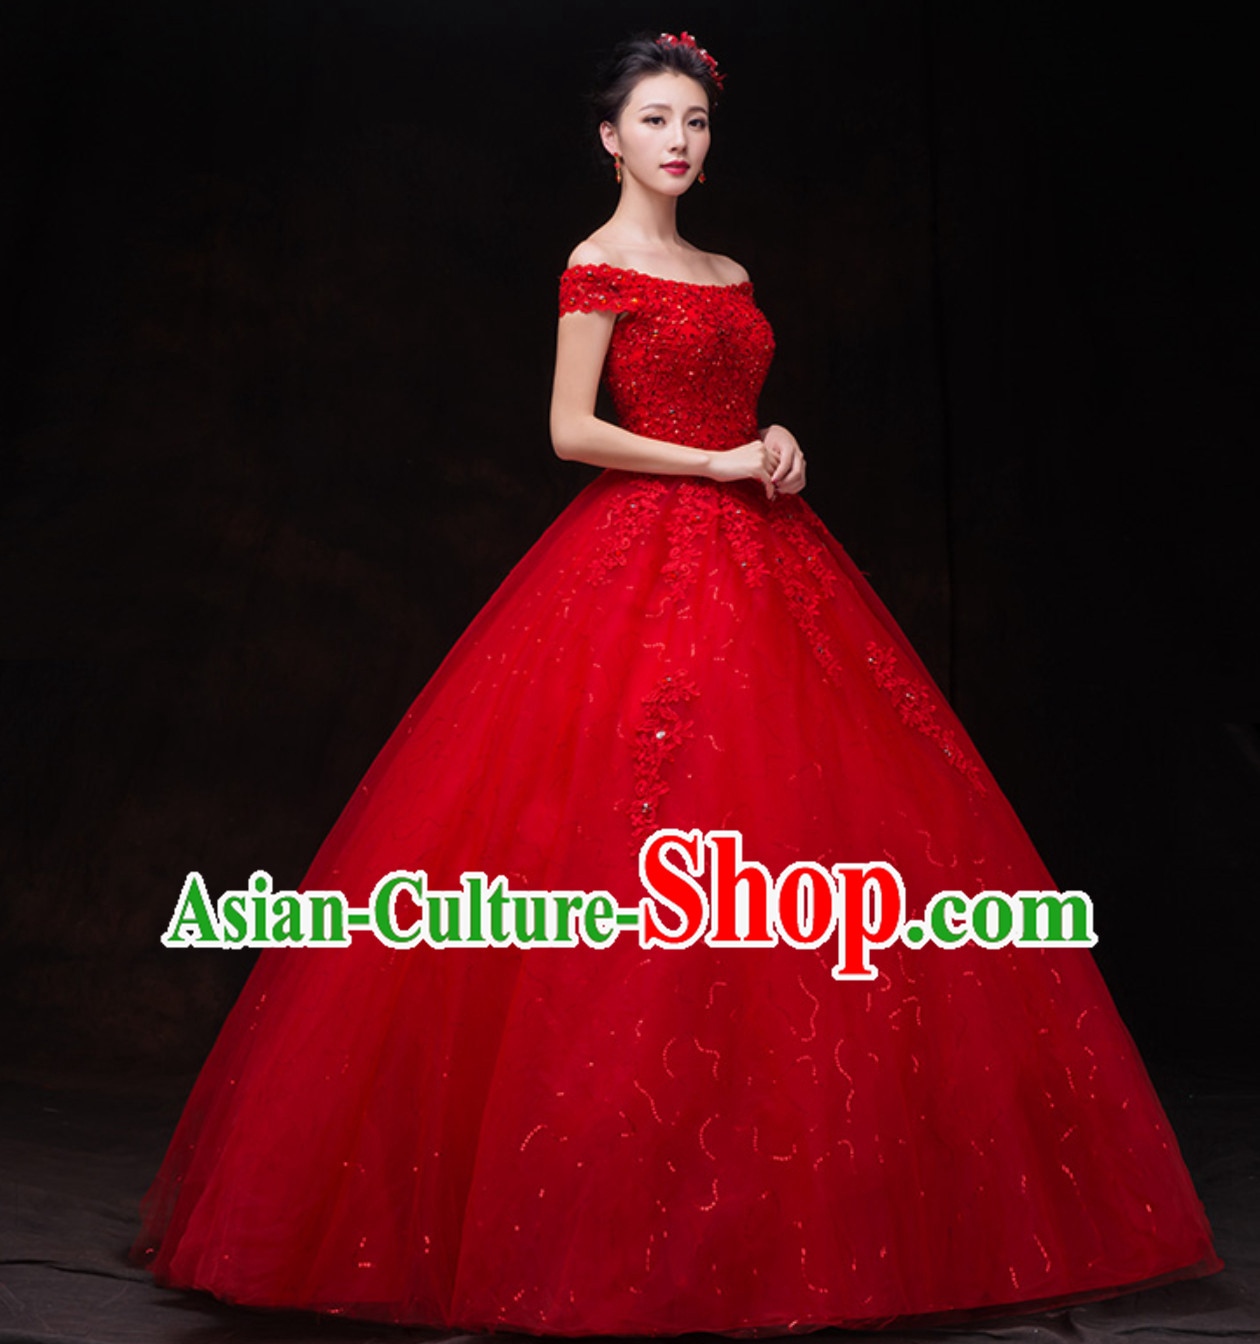 Top Classical Lucky Red Romantic Princess Wedding Dress Evening Dresses